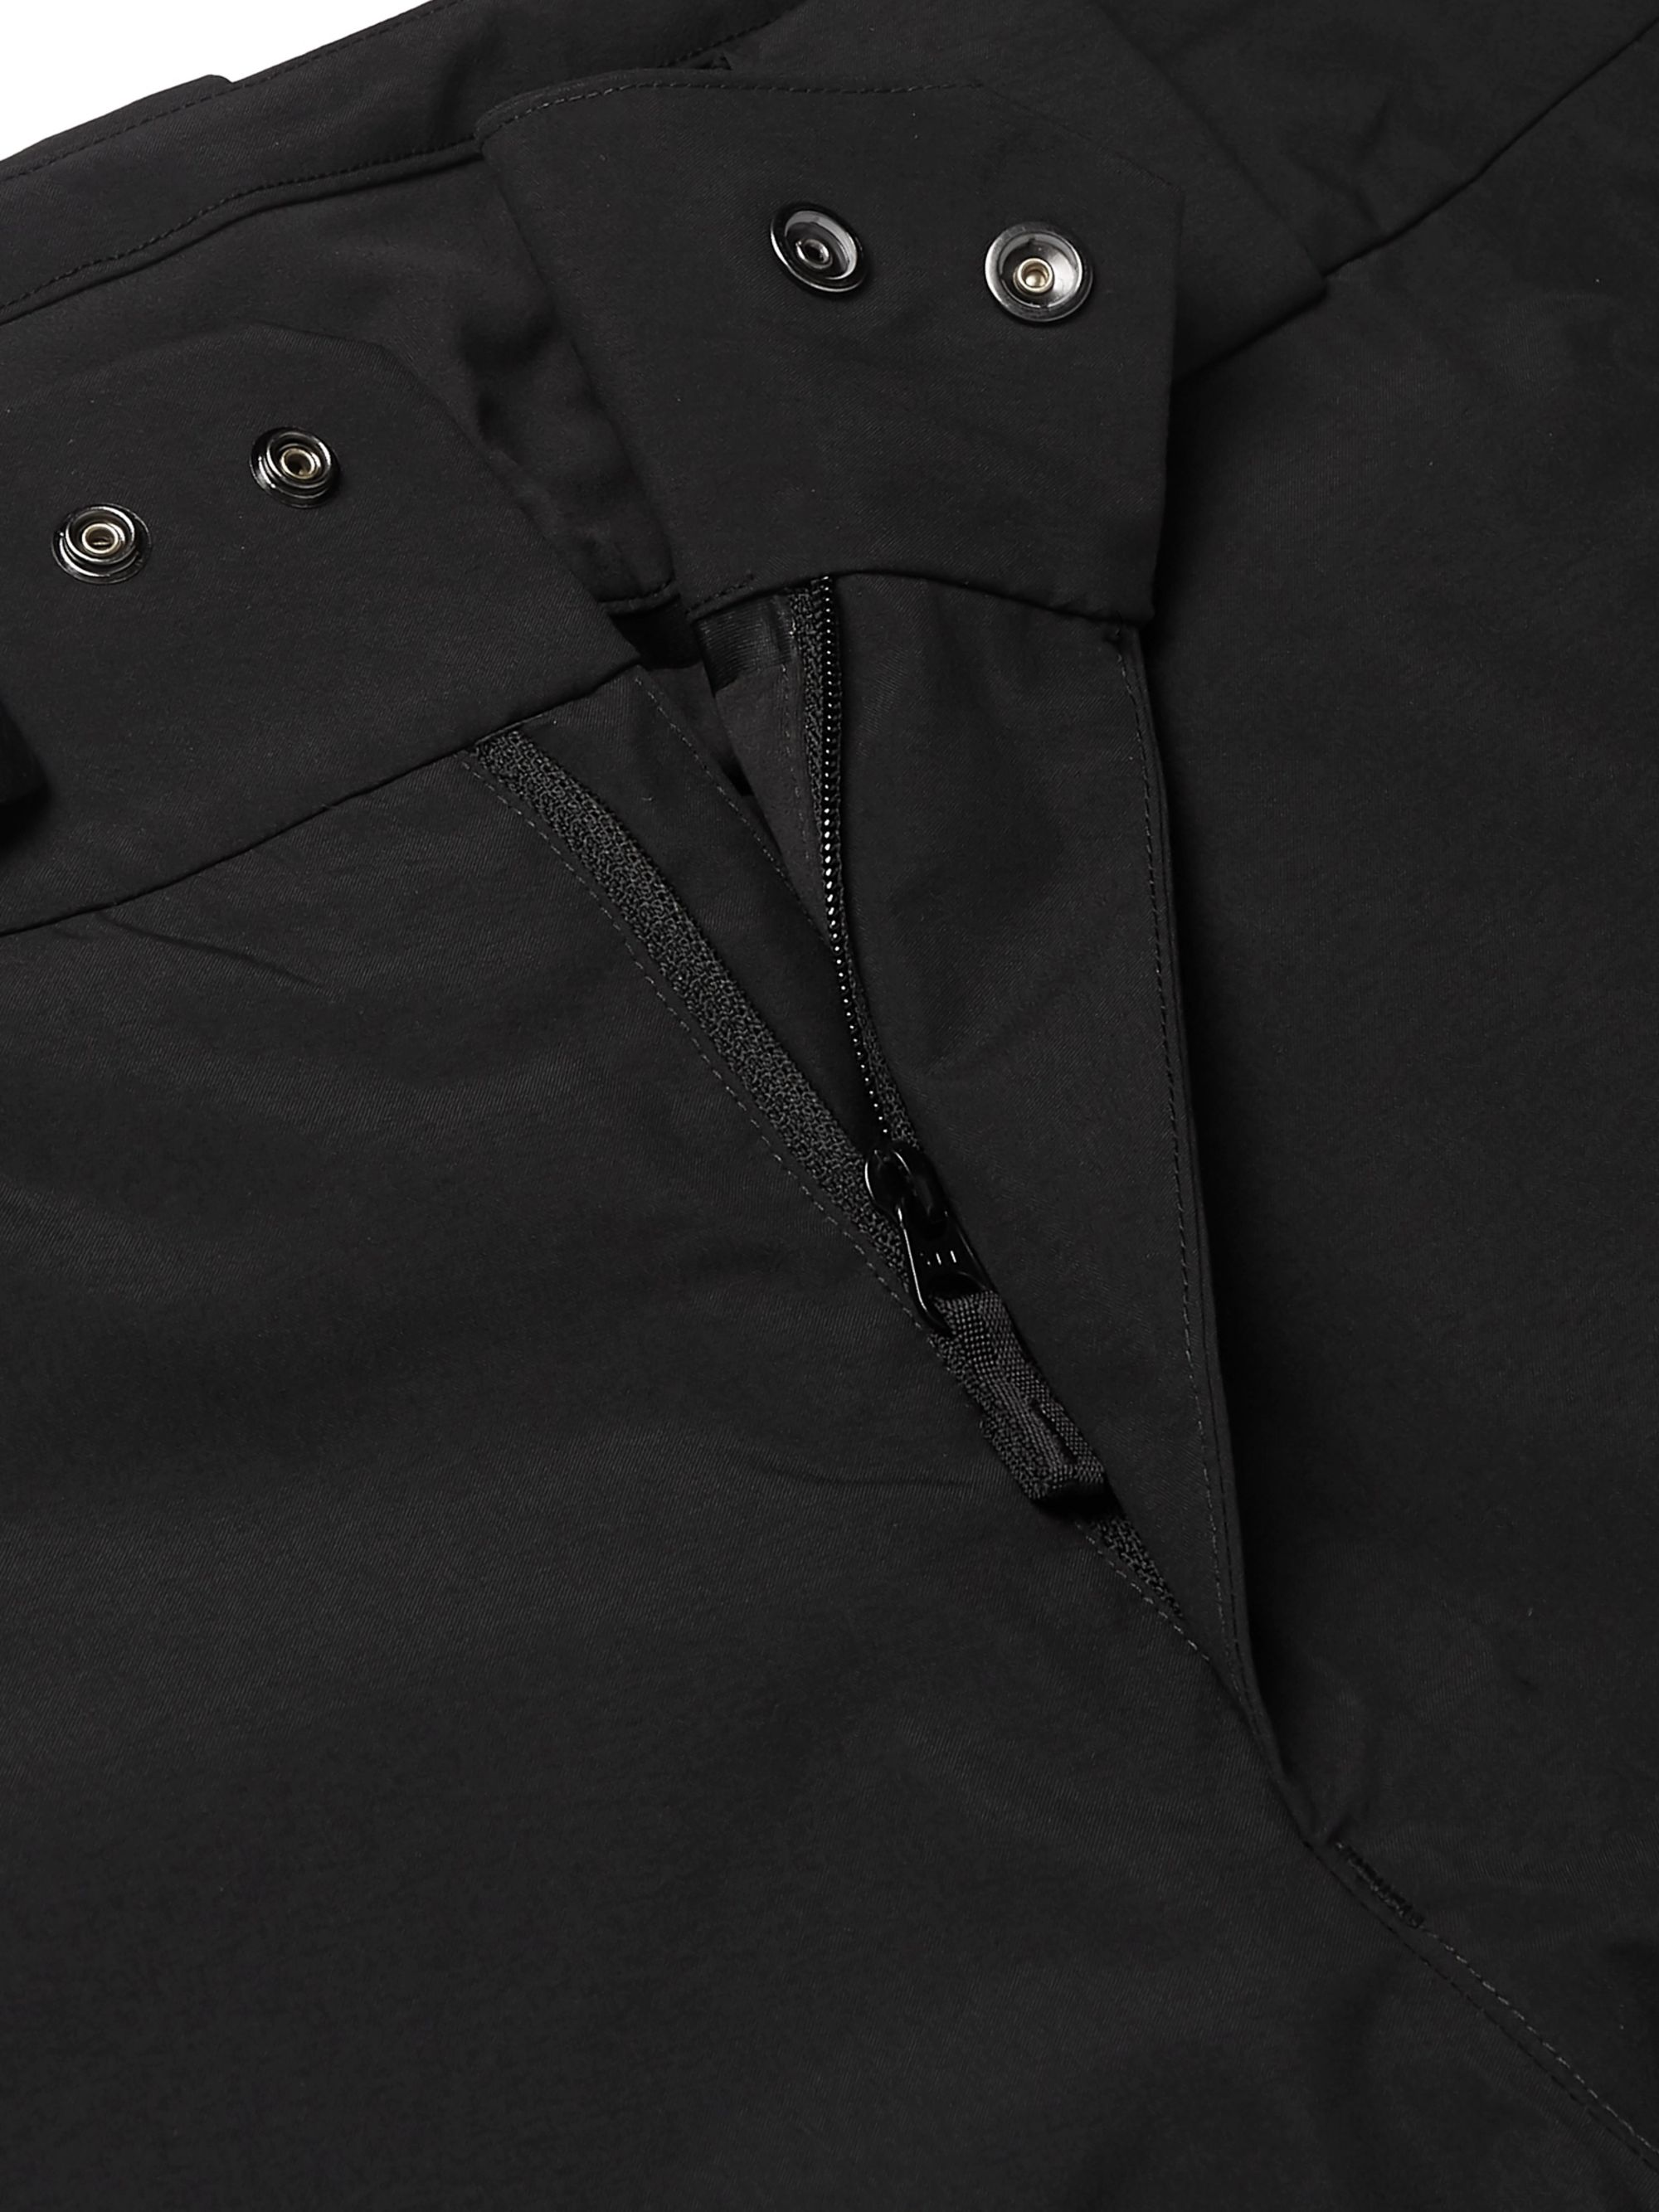 Arc'teryx Macai GORE-TEX Ski Trousers